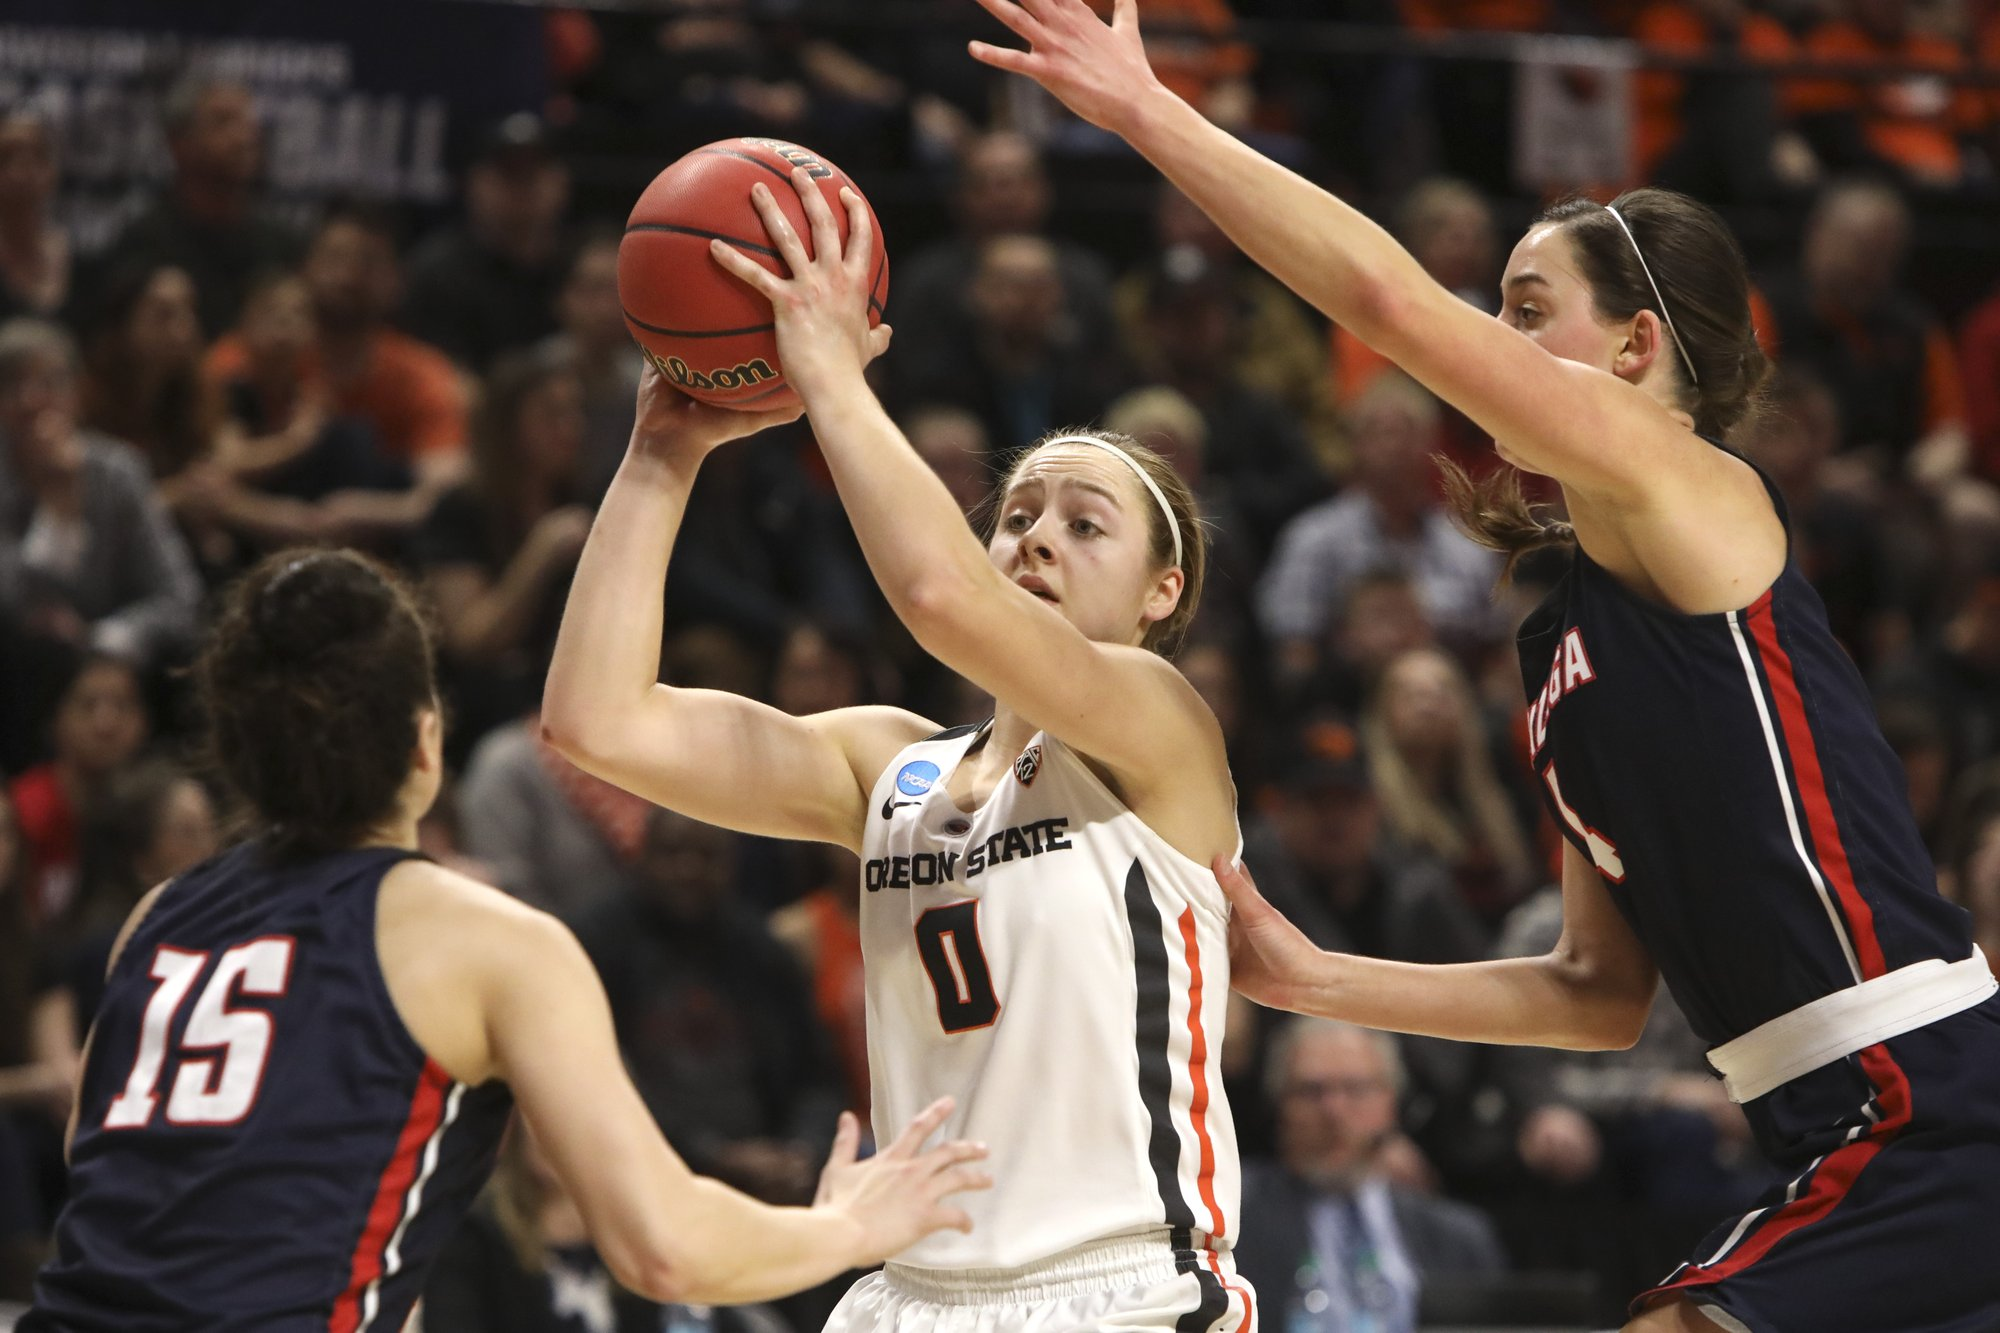 Oregon St. advances to Sweet 16 with 76-70 win over Gonzaga